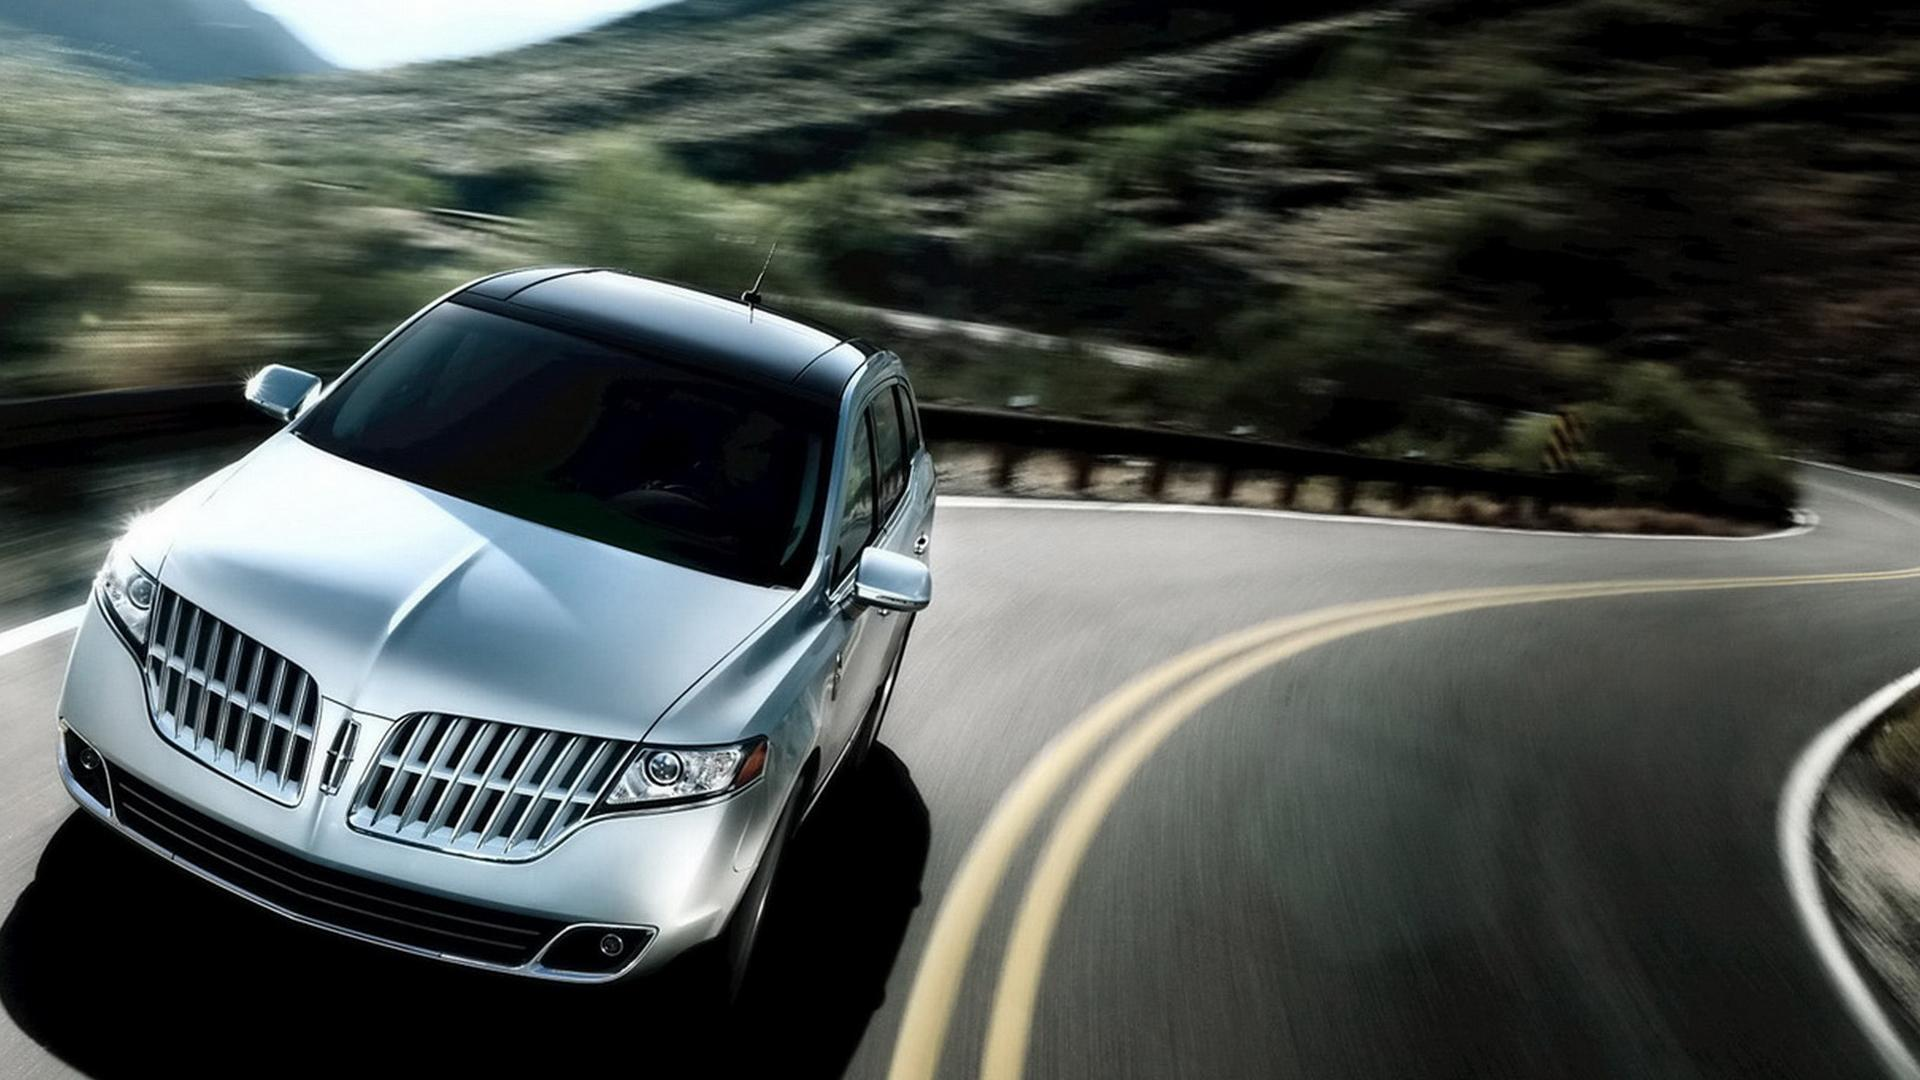 2011-Lincoln-MKT 1920x1080